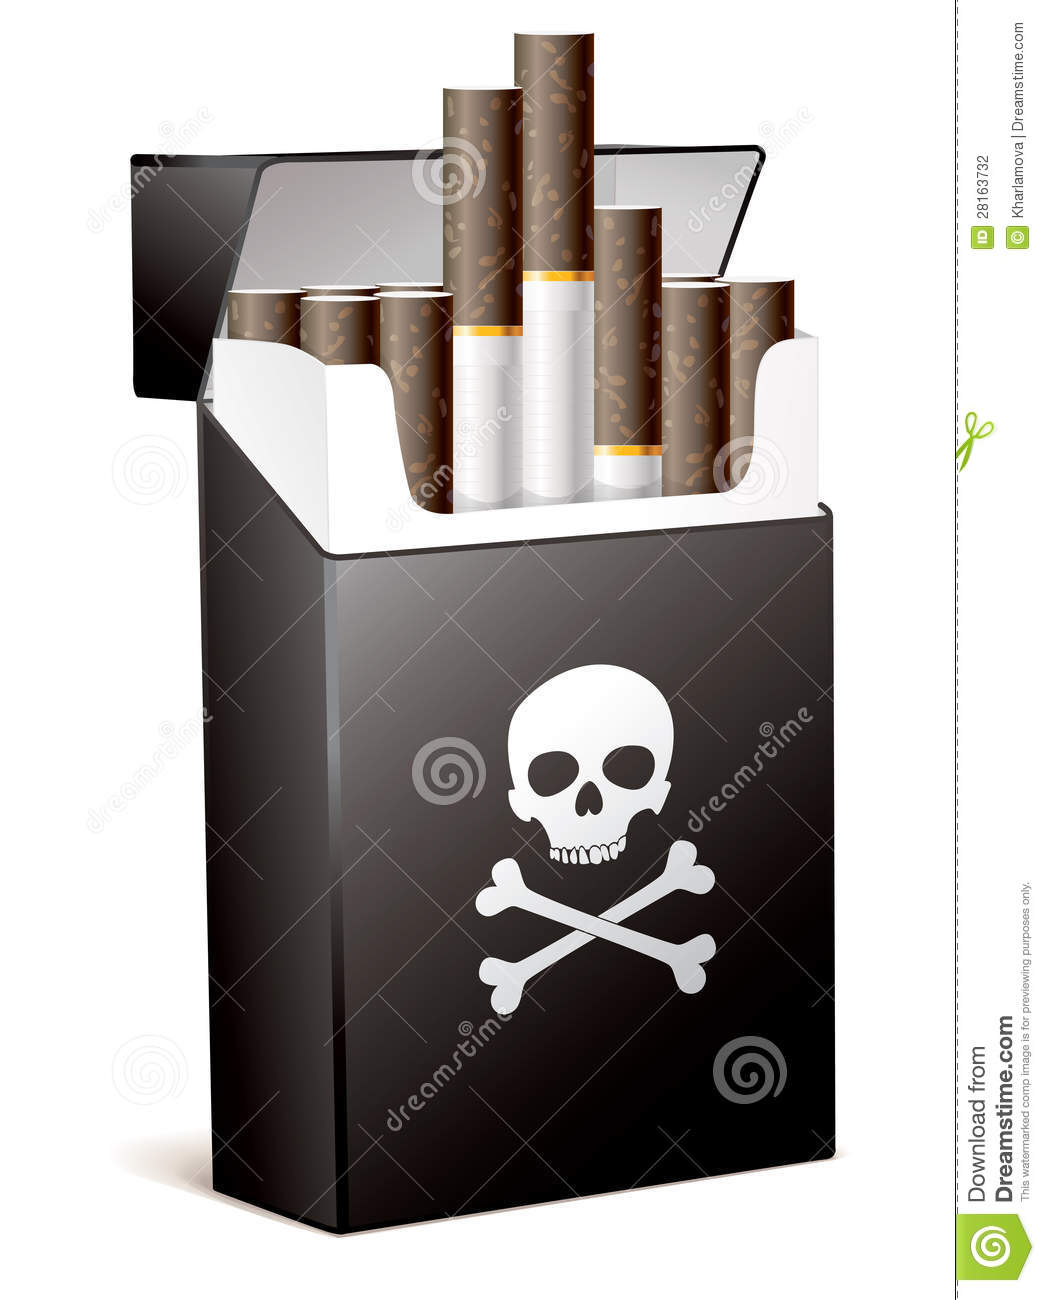 smoking is bad for your health essay 1 before i start writing my essay, i have to make a confession that i am addicted to smoking i started smoking at a very young age and have been addicted.